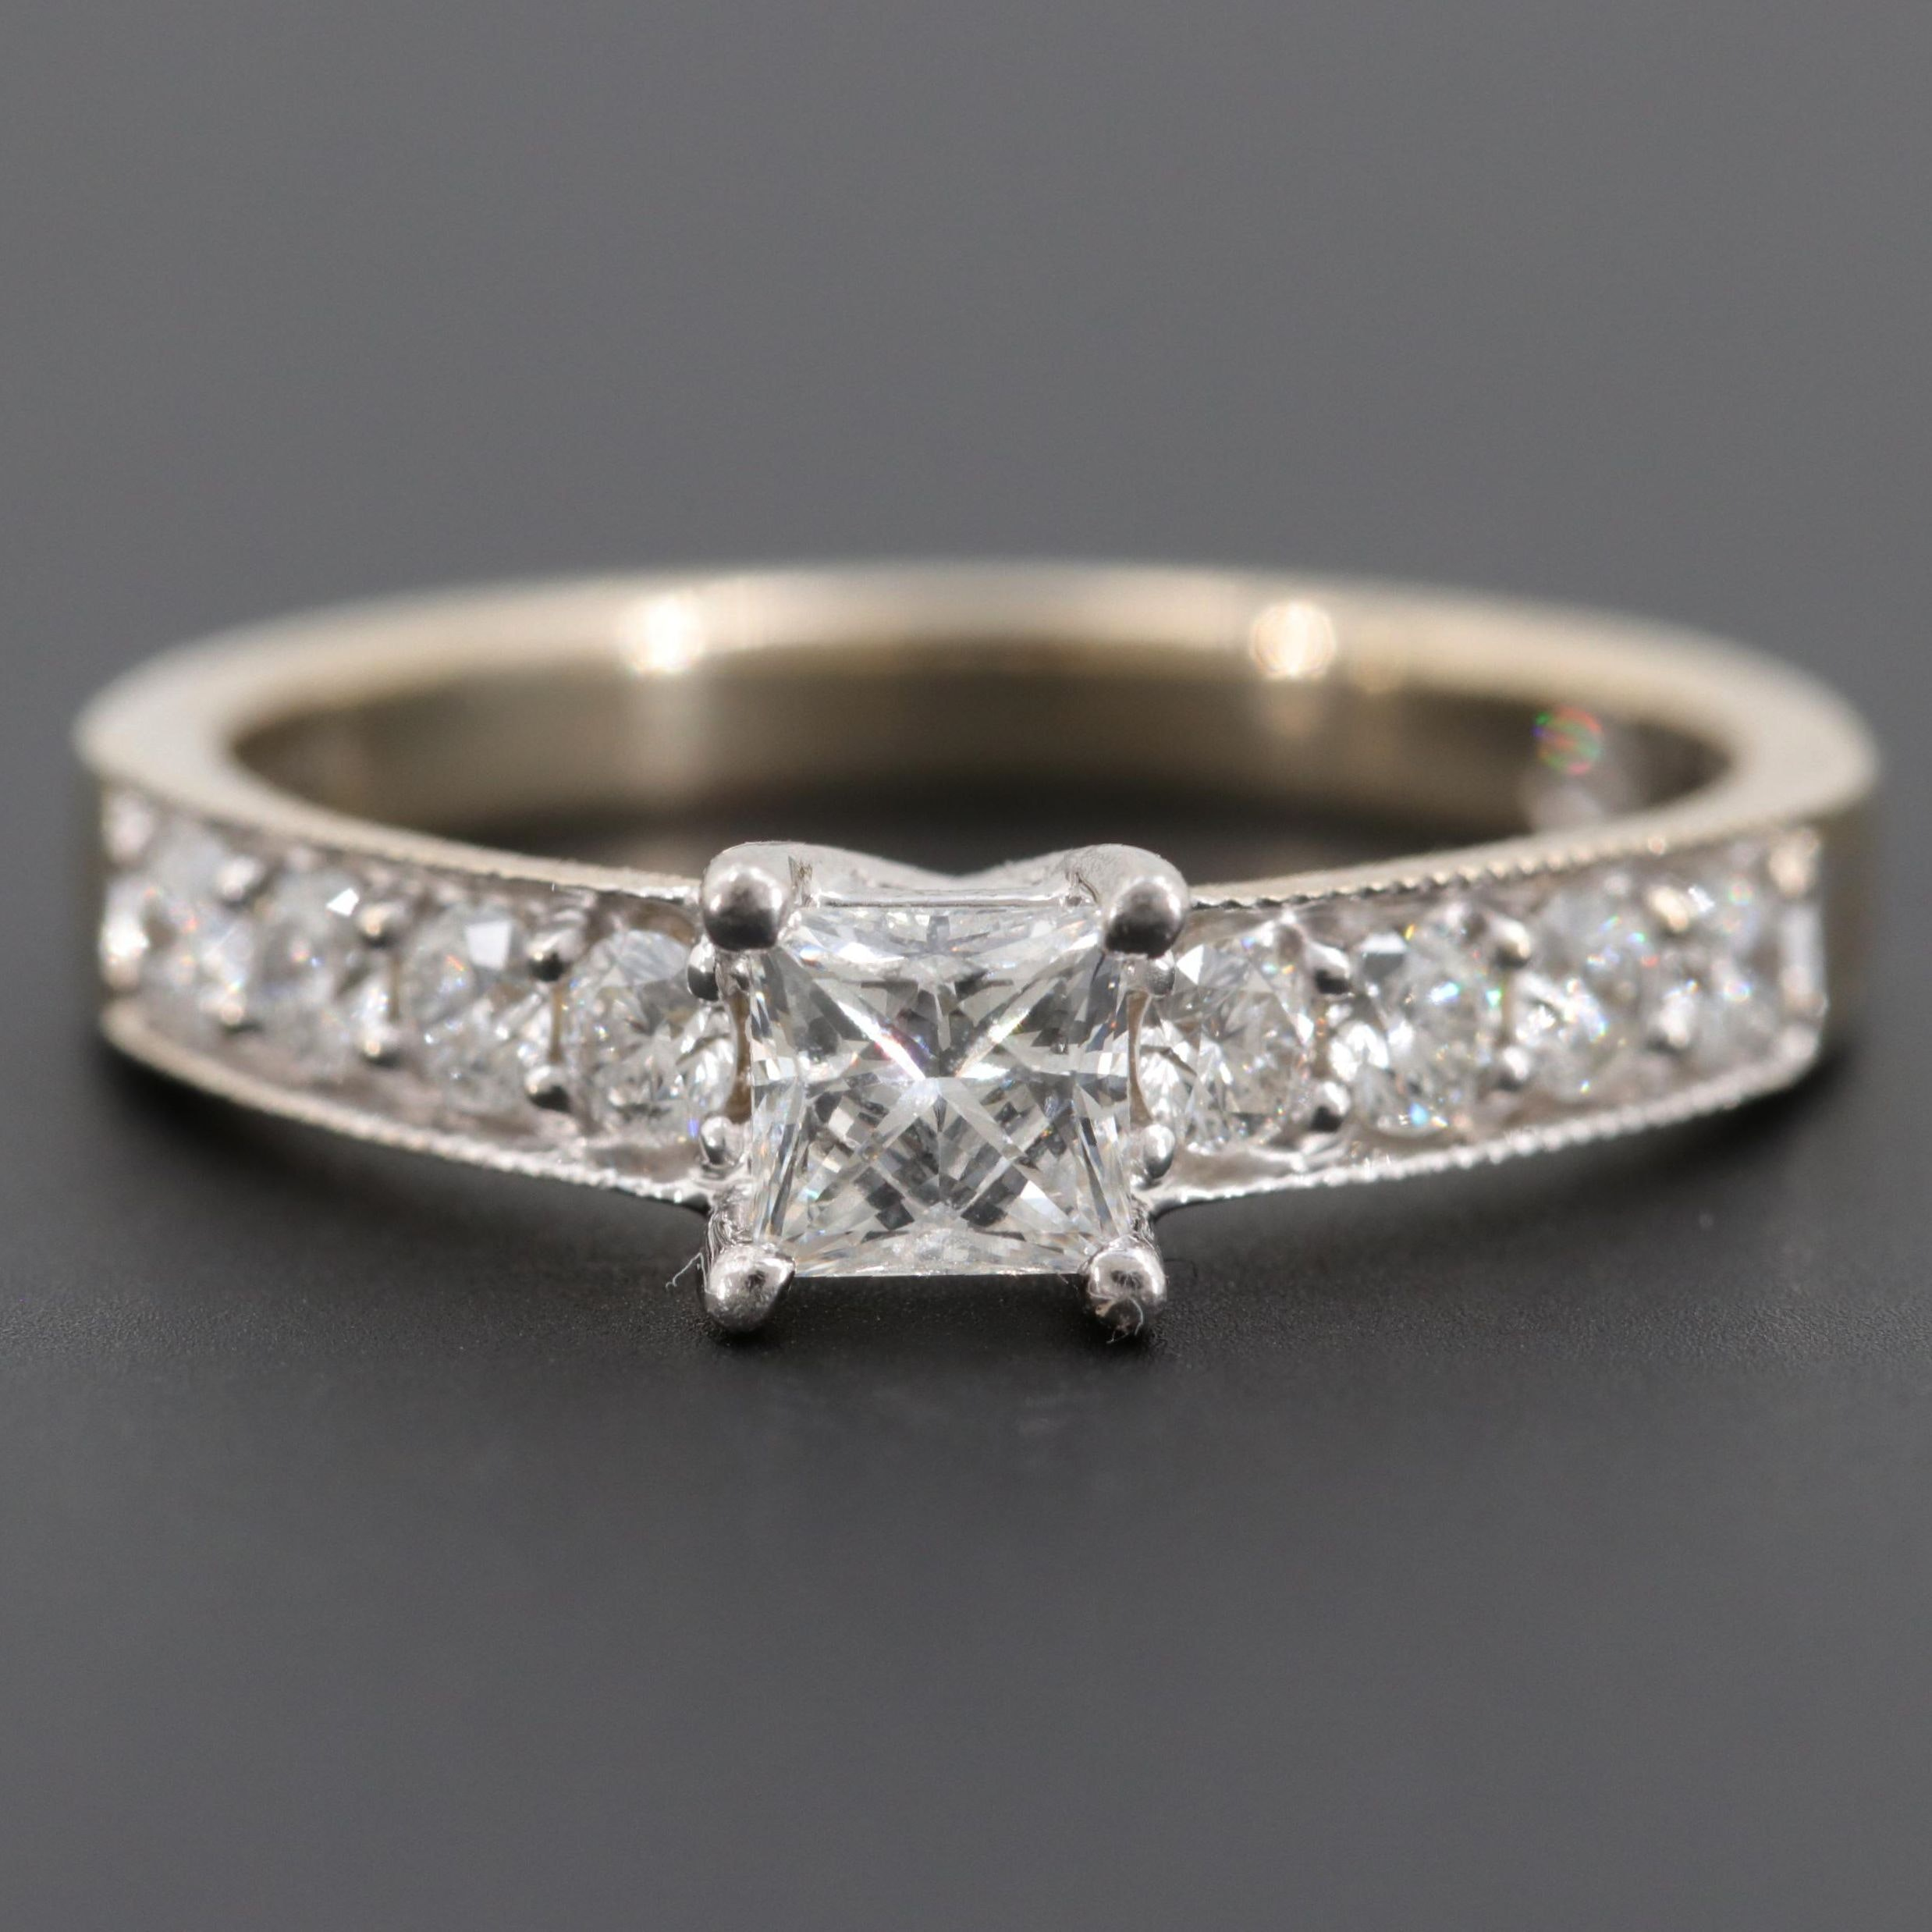 Leo 14K White Gold Diamond Ring with Platinum Accent